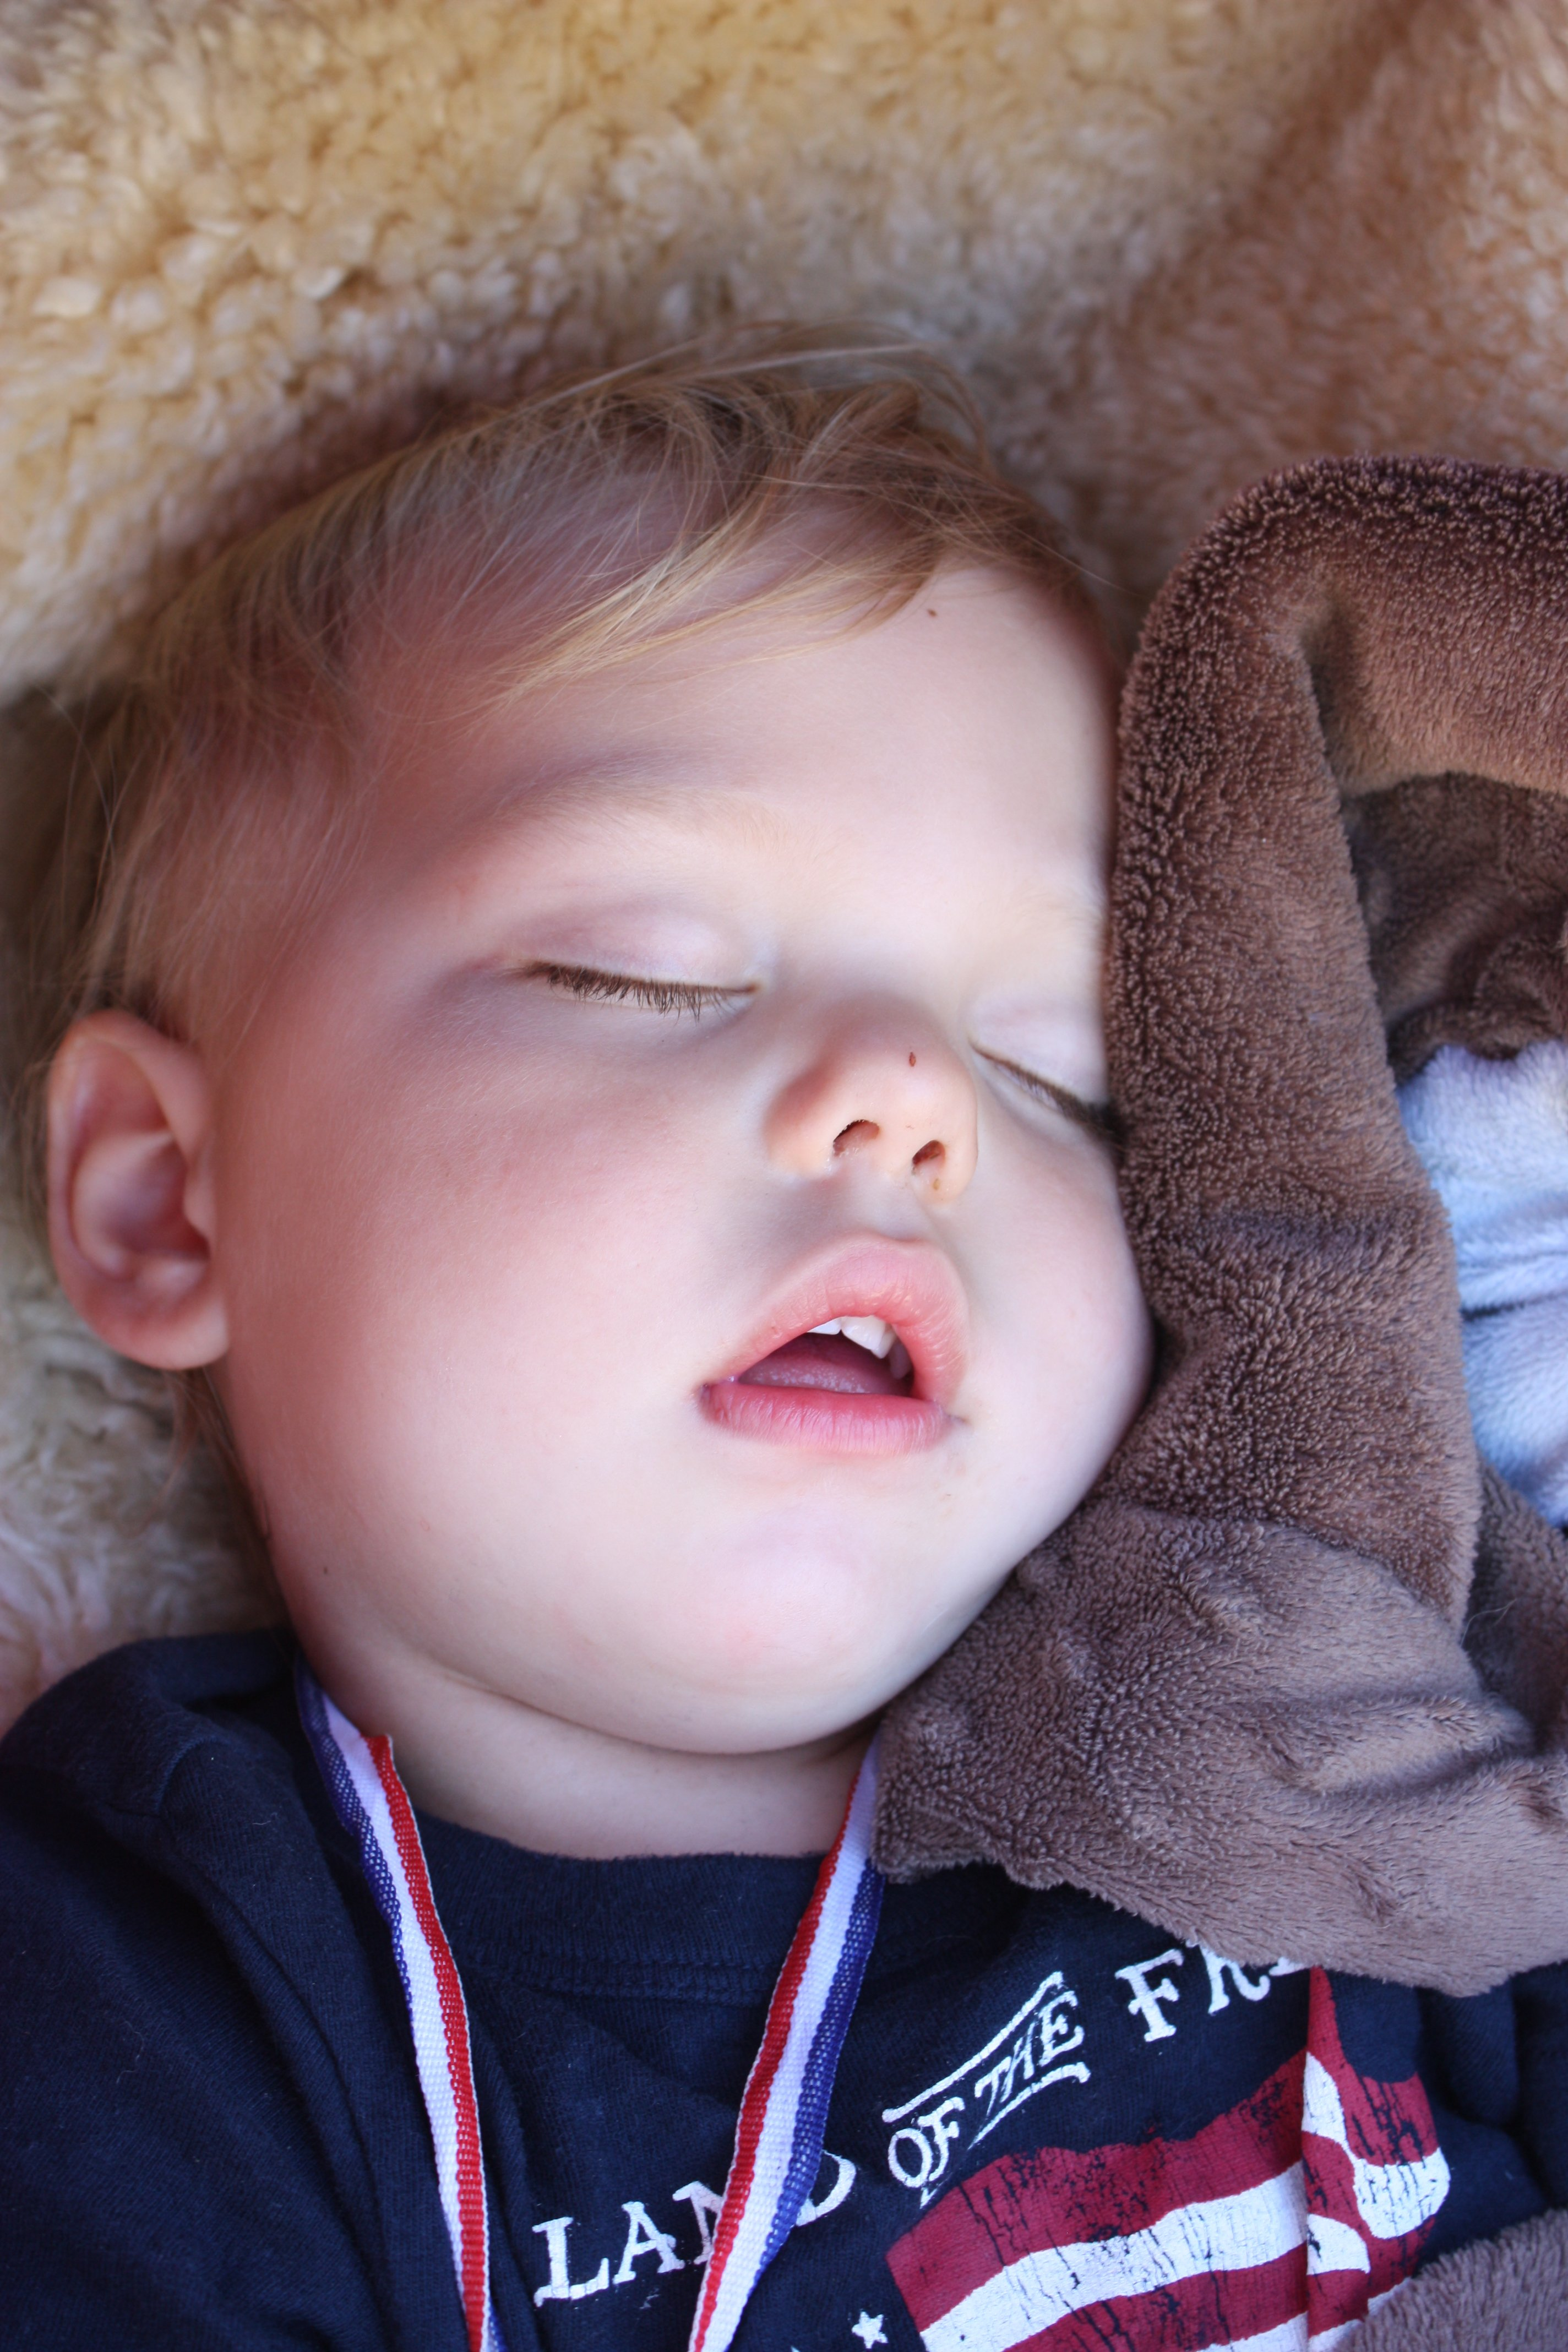 taking a snooze wearing his show ribbon - hard work wrangling goats when you're two!